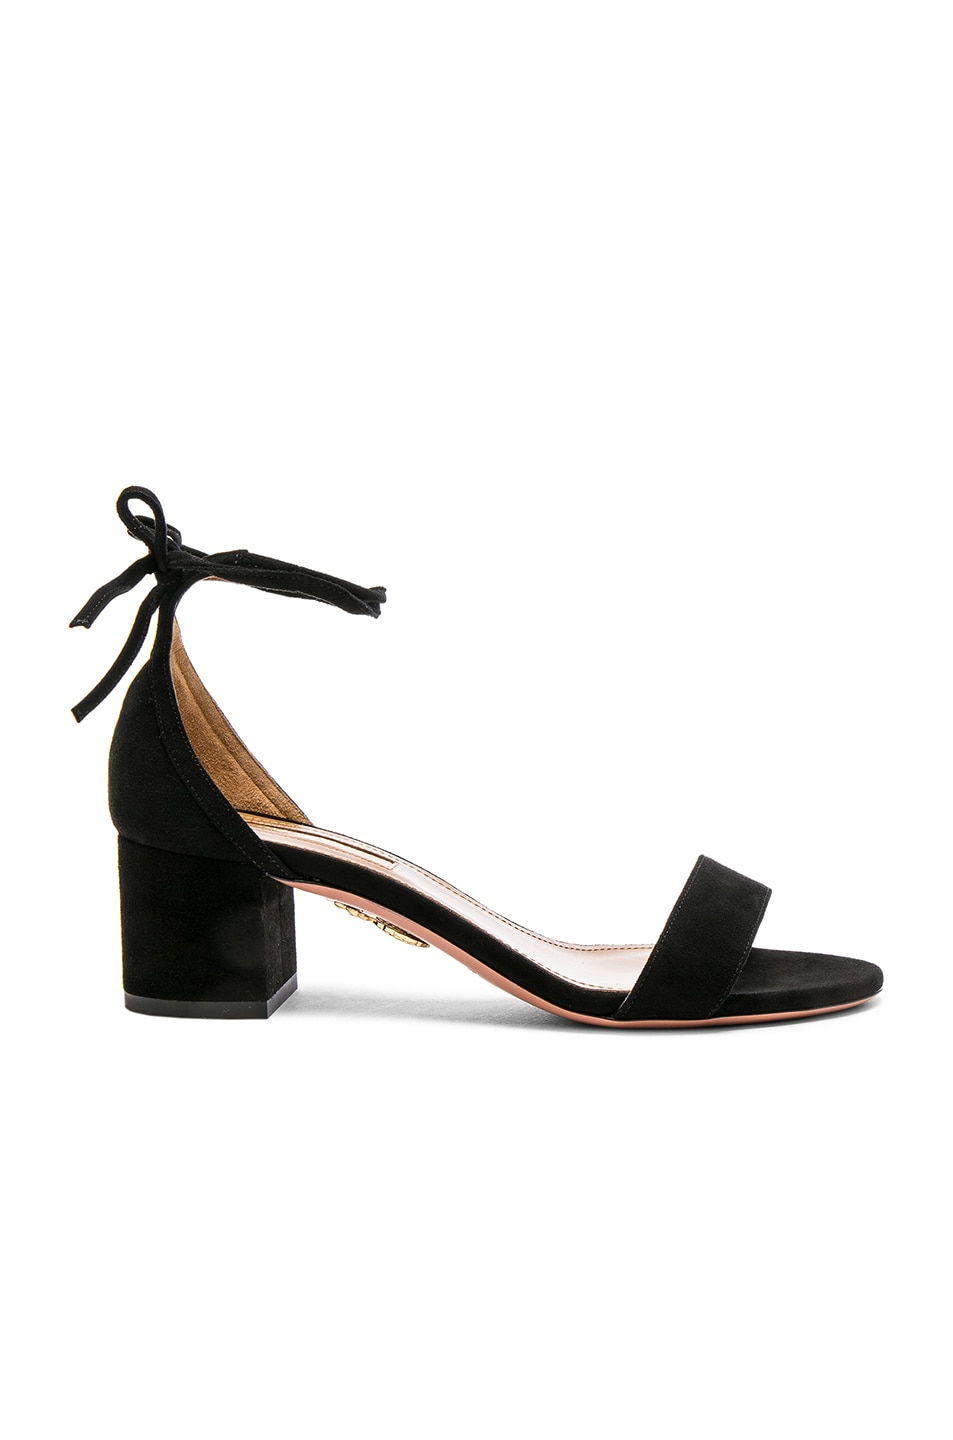 Image 1 of Aquazzura Suede City Sandal Heels in Black